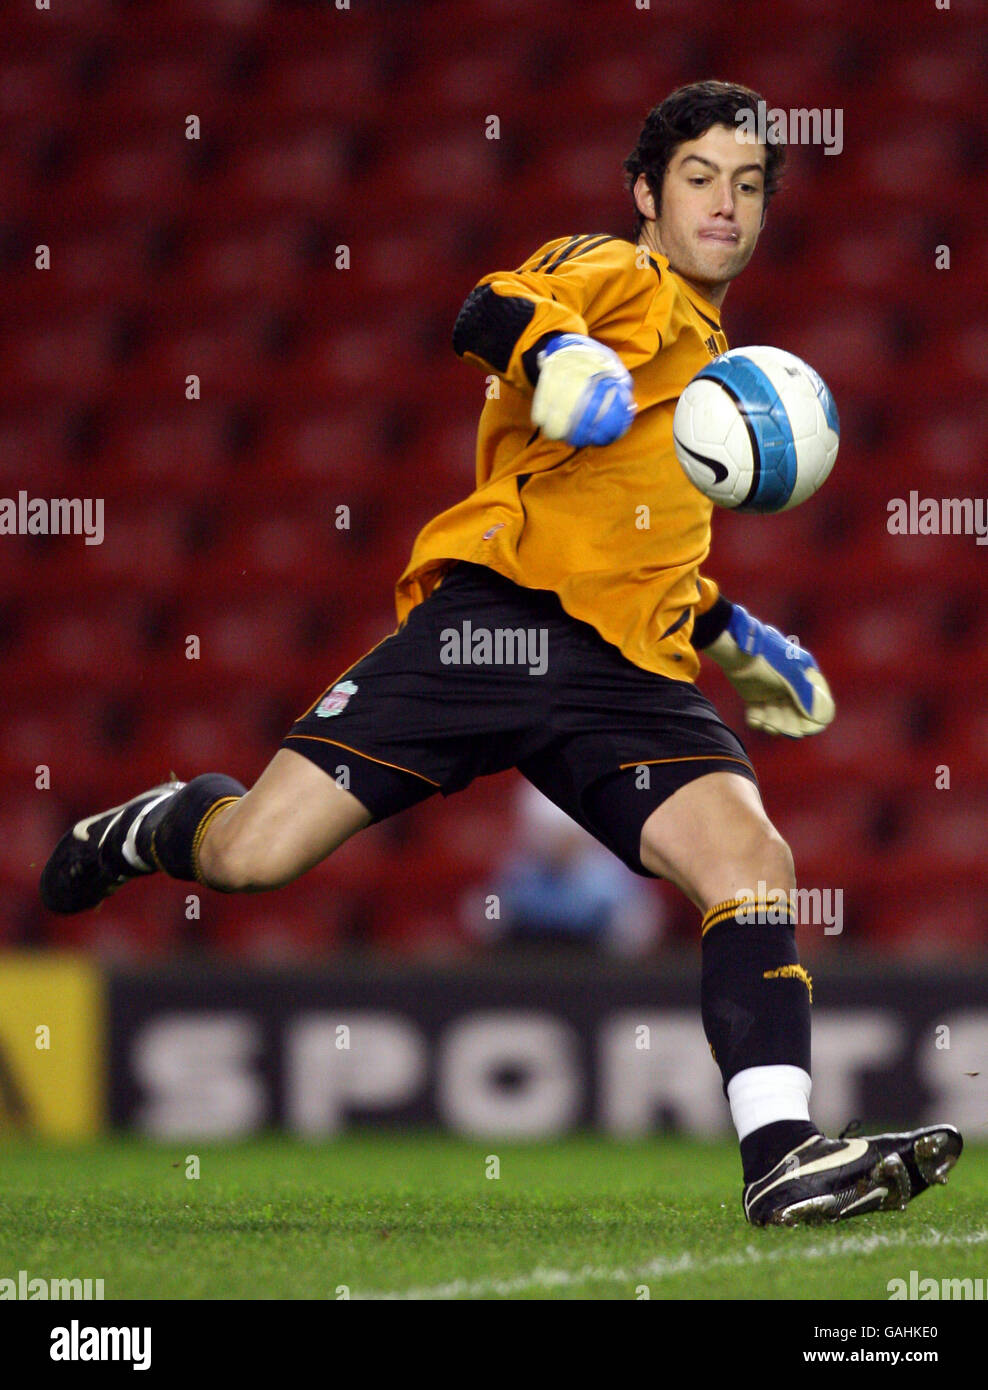 Soccer - FA Youth Cup - Fourth Round - Liverpool v Arsenal - Anfield - Stock Image